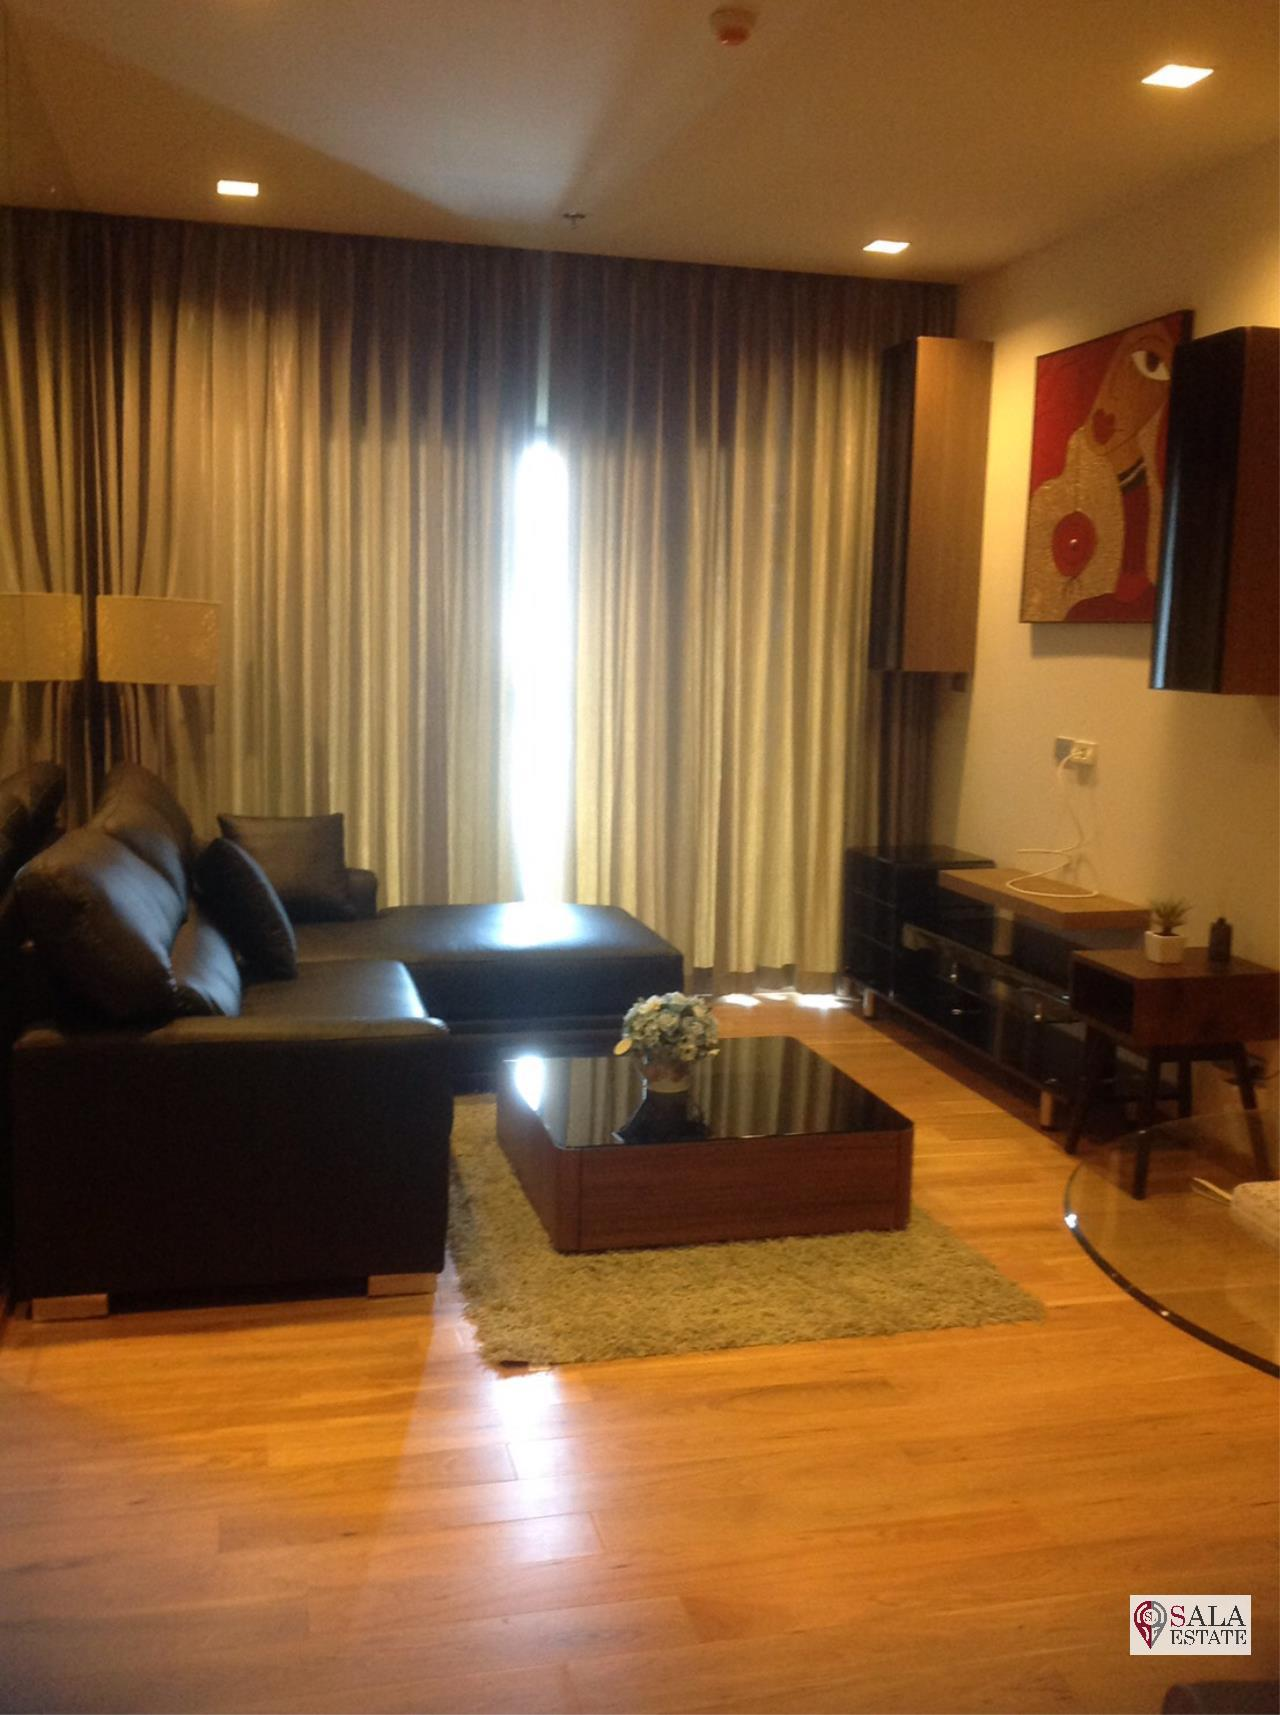 SALA ESTATE Agency's HYDE SUKHUMVIT 13 – BTS NANA,2BEDROOMS 2BATHROOMS, 4FULLY FURNISHED 6